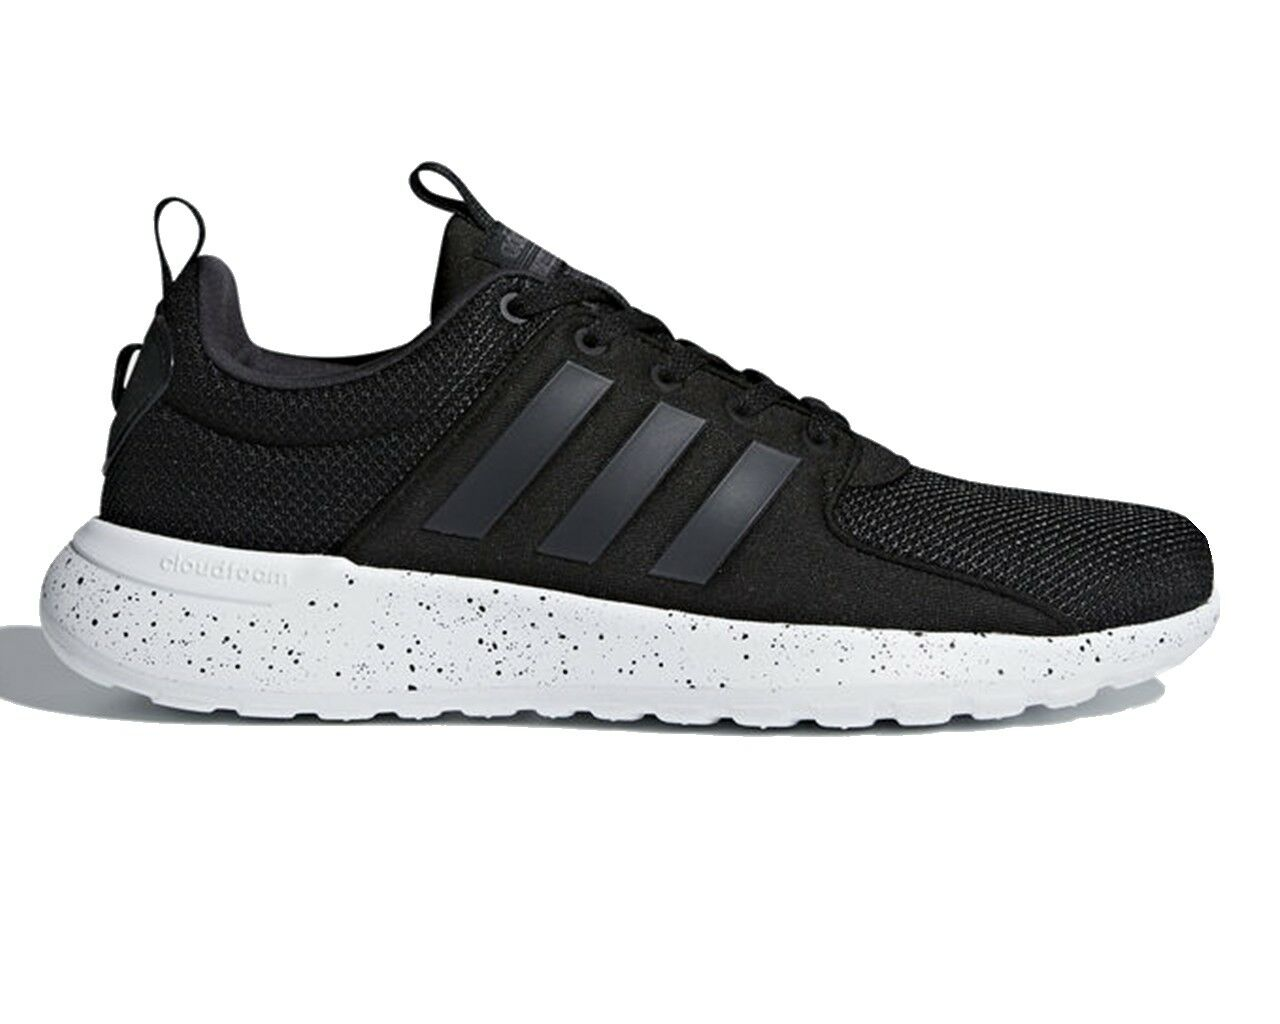 Adidas Light Cloudfoam CF Light Adidas Racer DB0594 Hombre Trainers Negro e05467